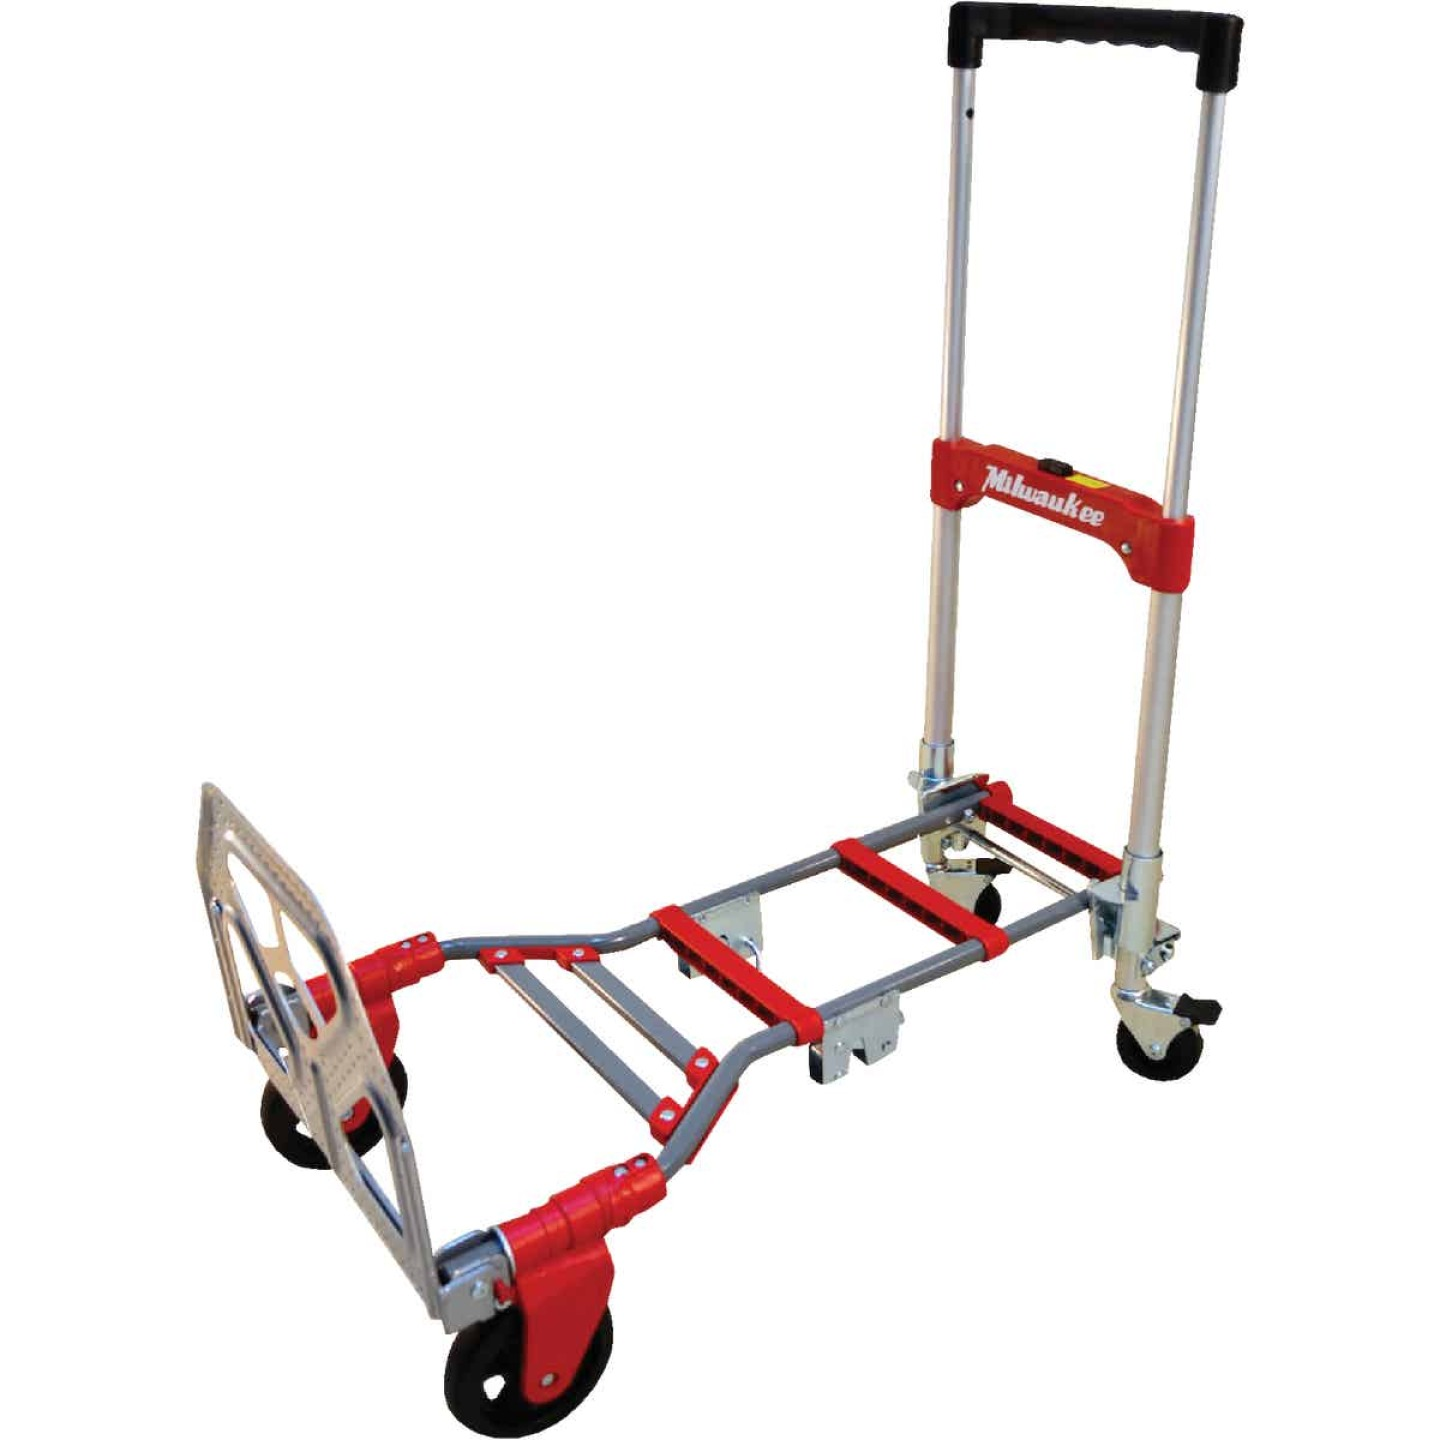 Milwaukee 300 Lb. Capacity 2-In-1 Hand Truck Image 2